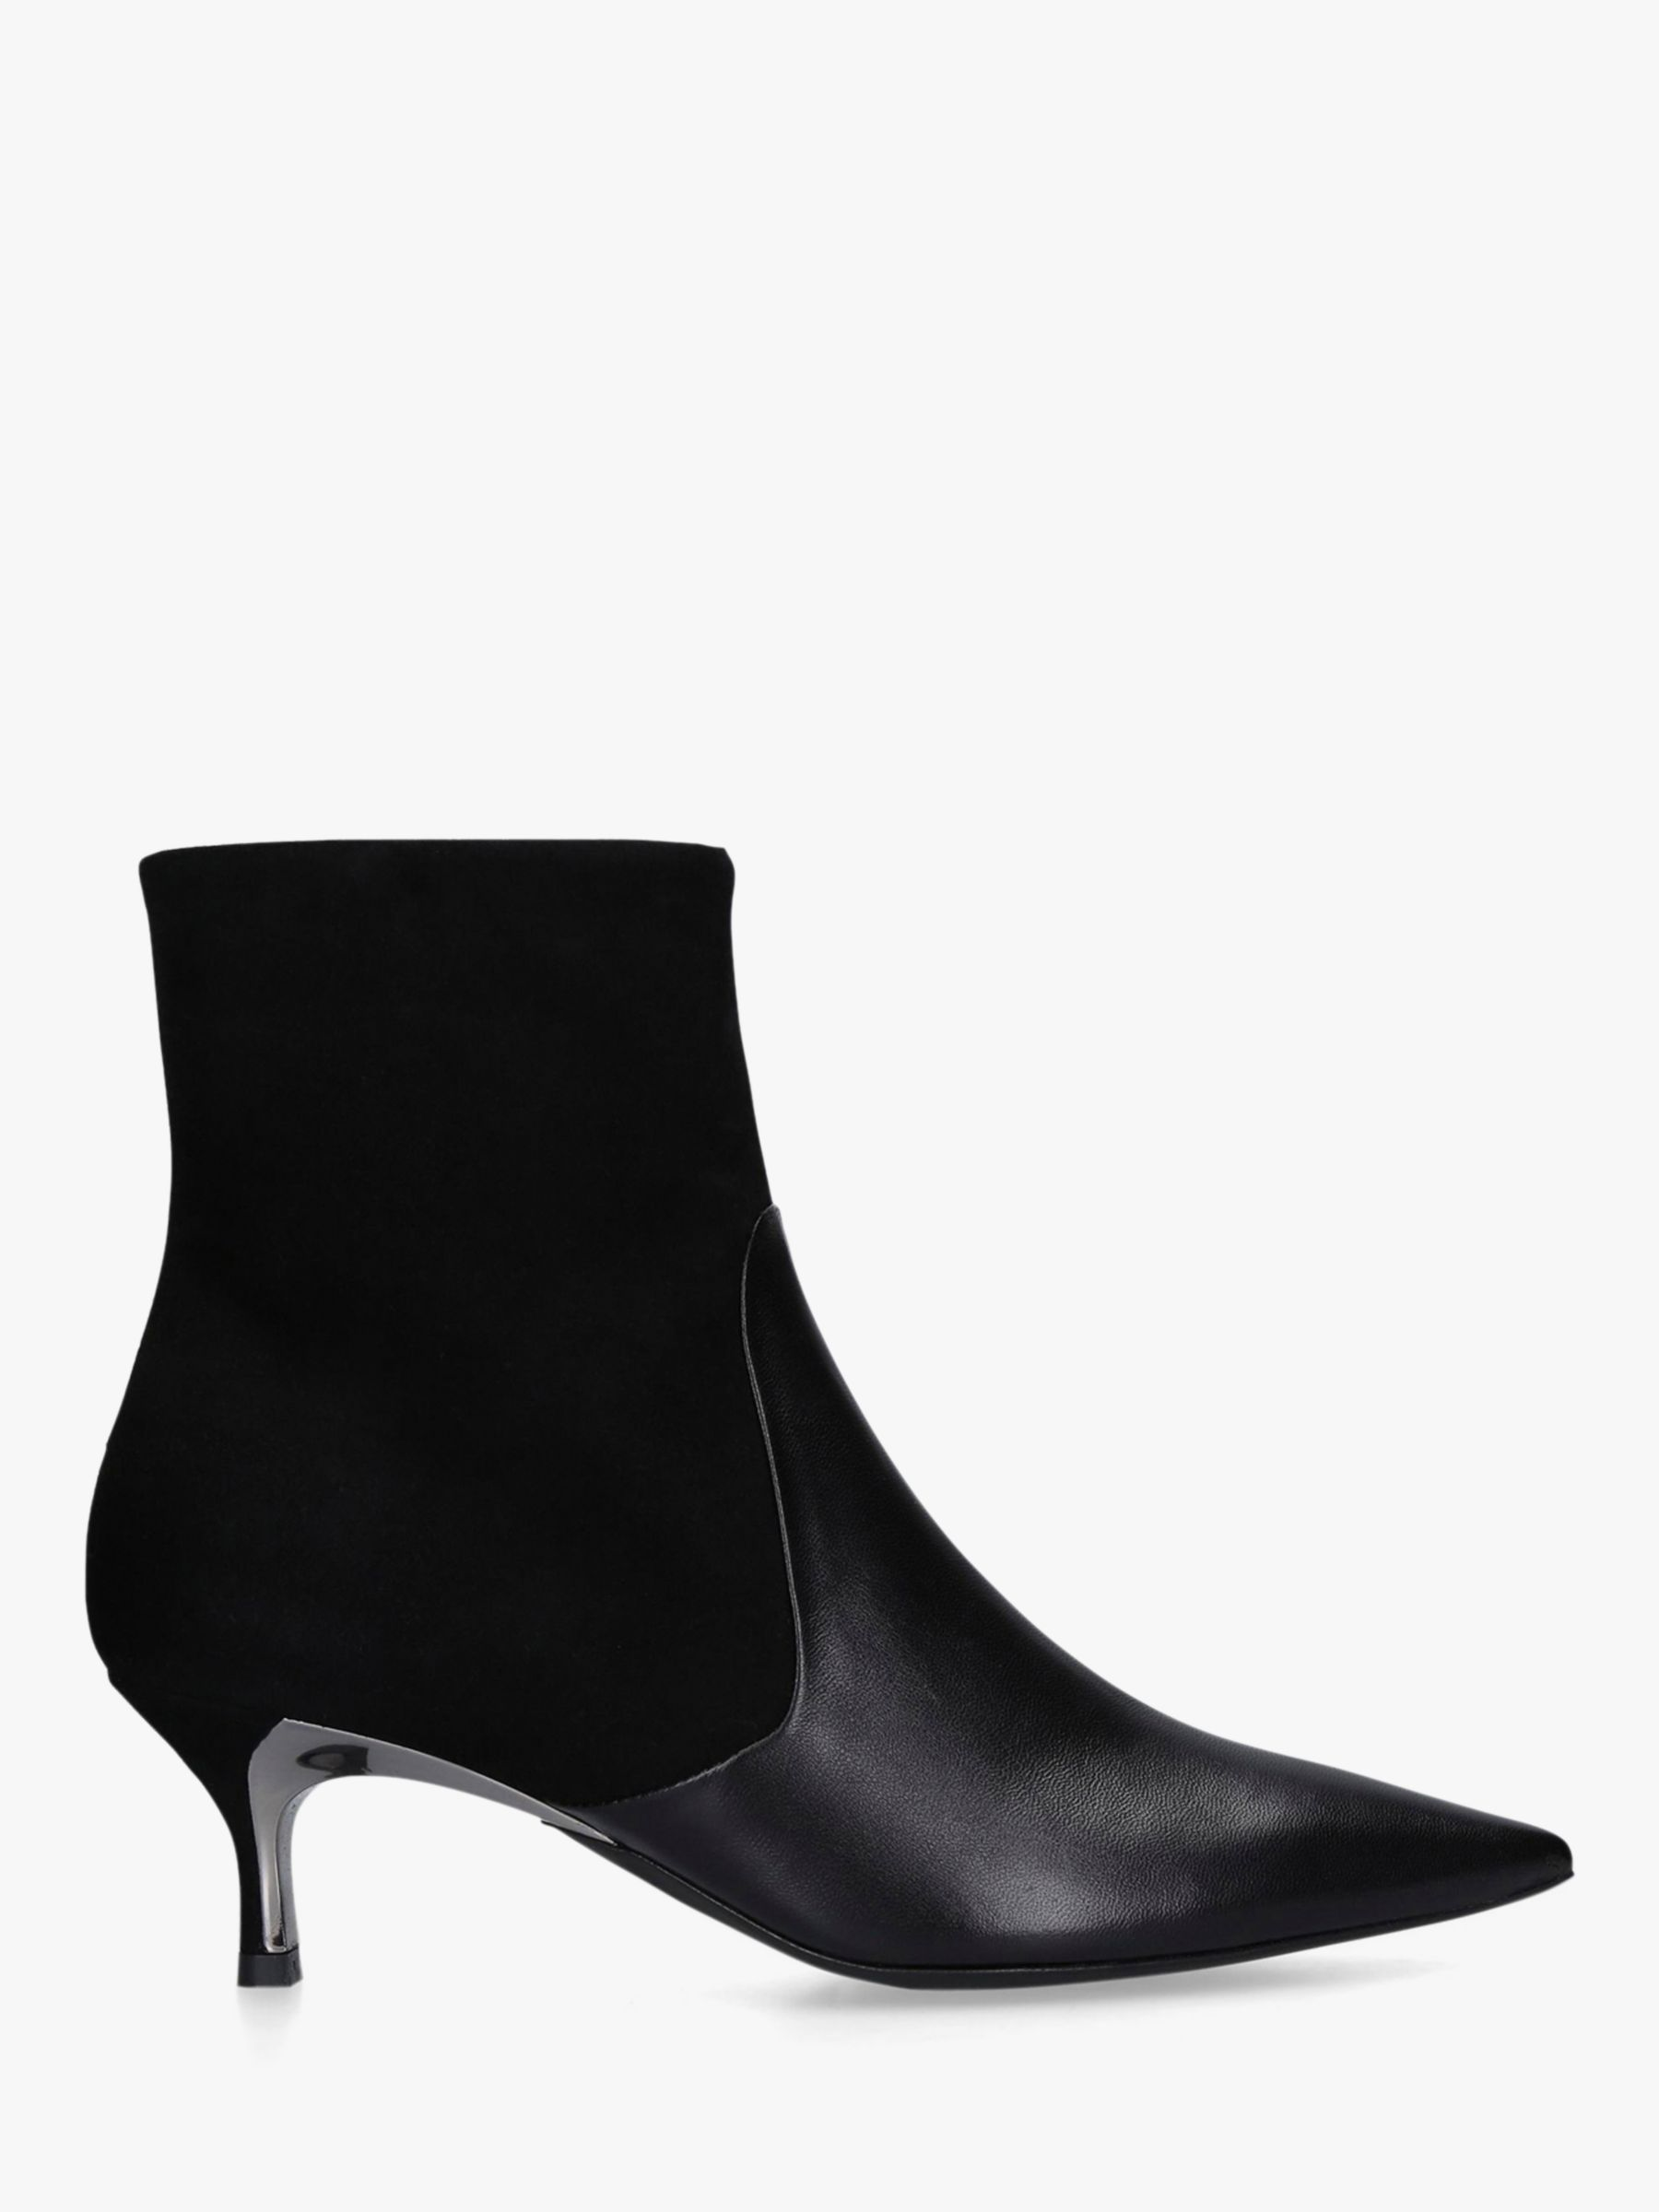 Furla Furla Eva Stiletto Heel Leather Ankle Boots, Black